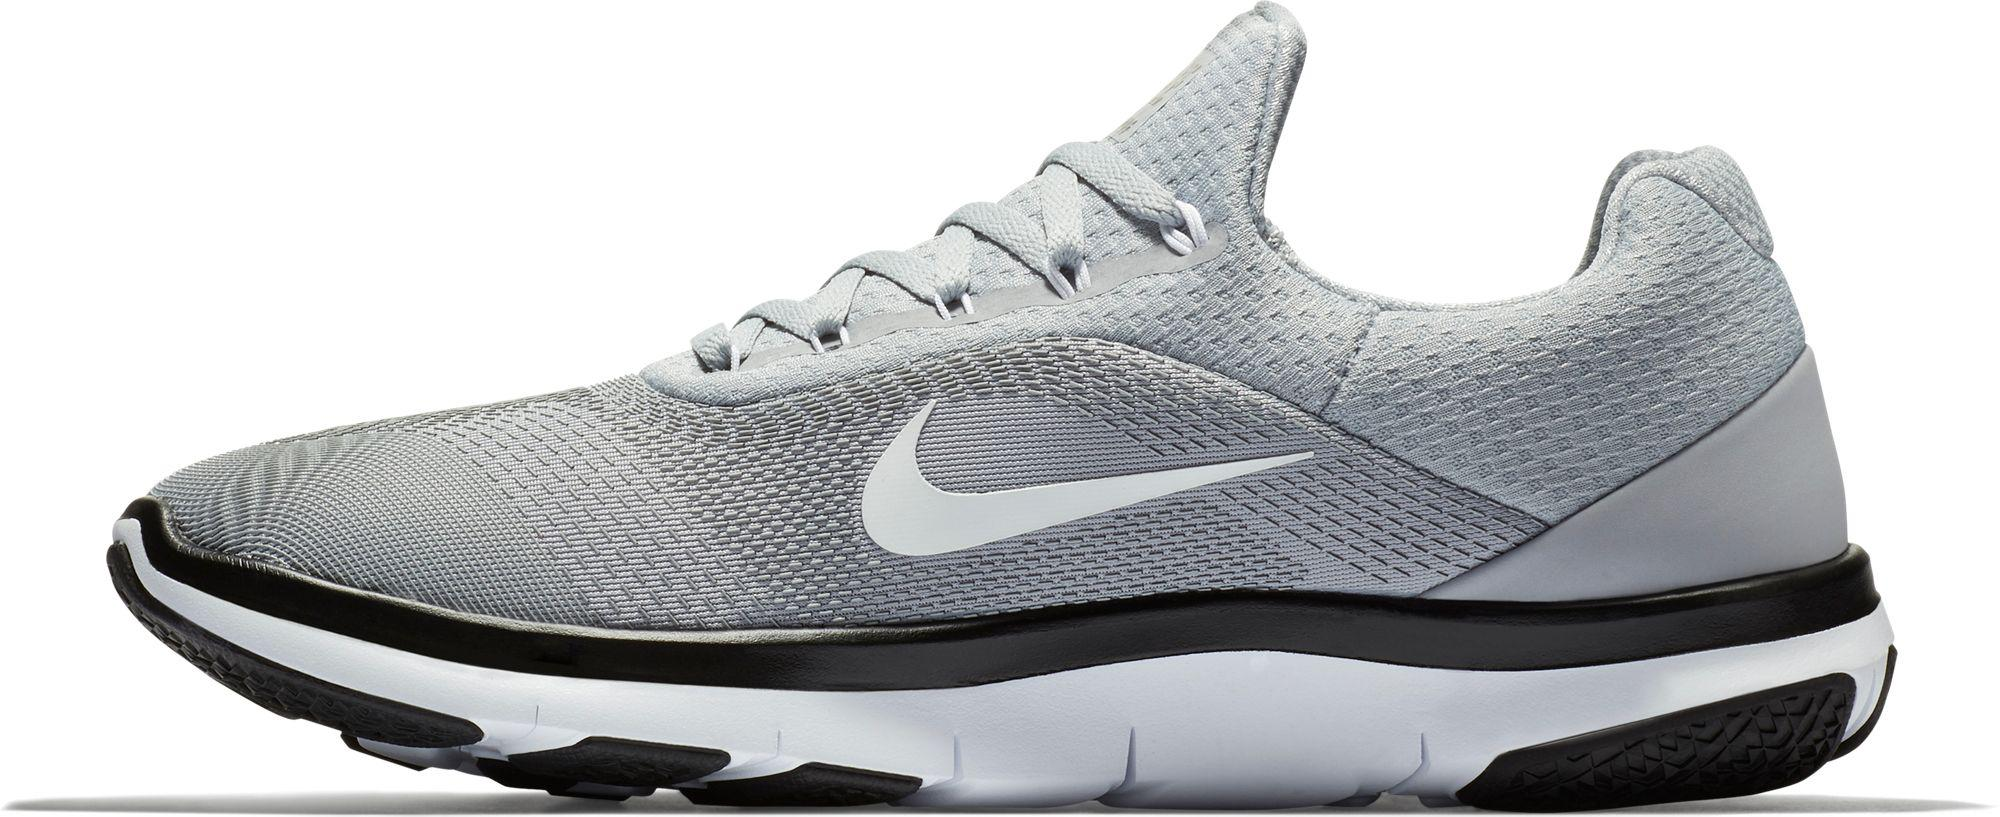 82e20a22372c9 Lyst - Nike Free Trainer V7 Tb Training Shoes in Gray for Men